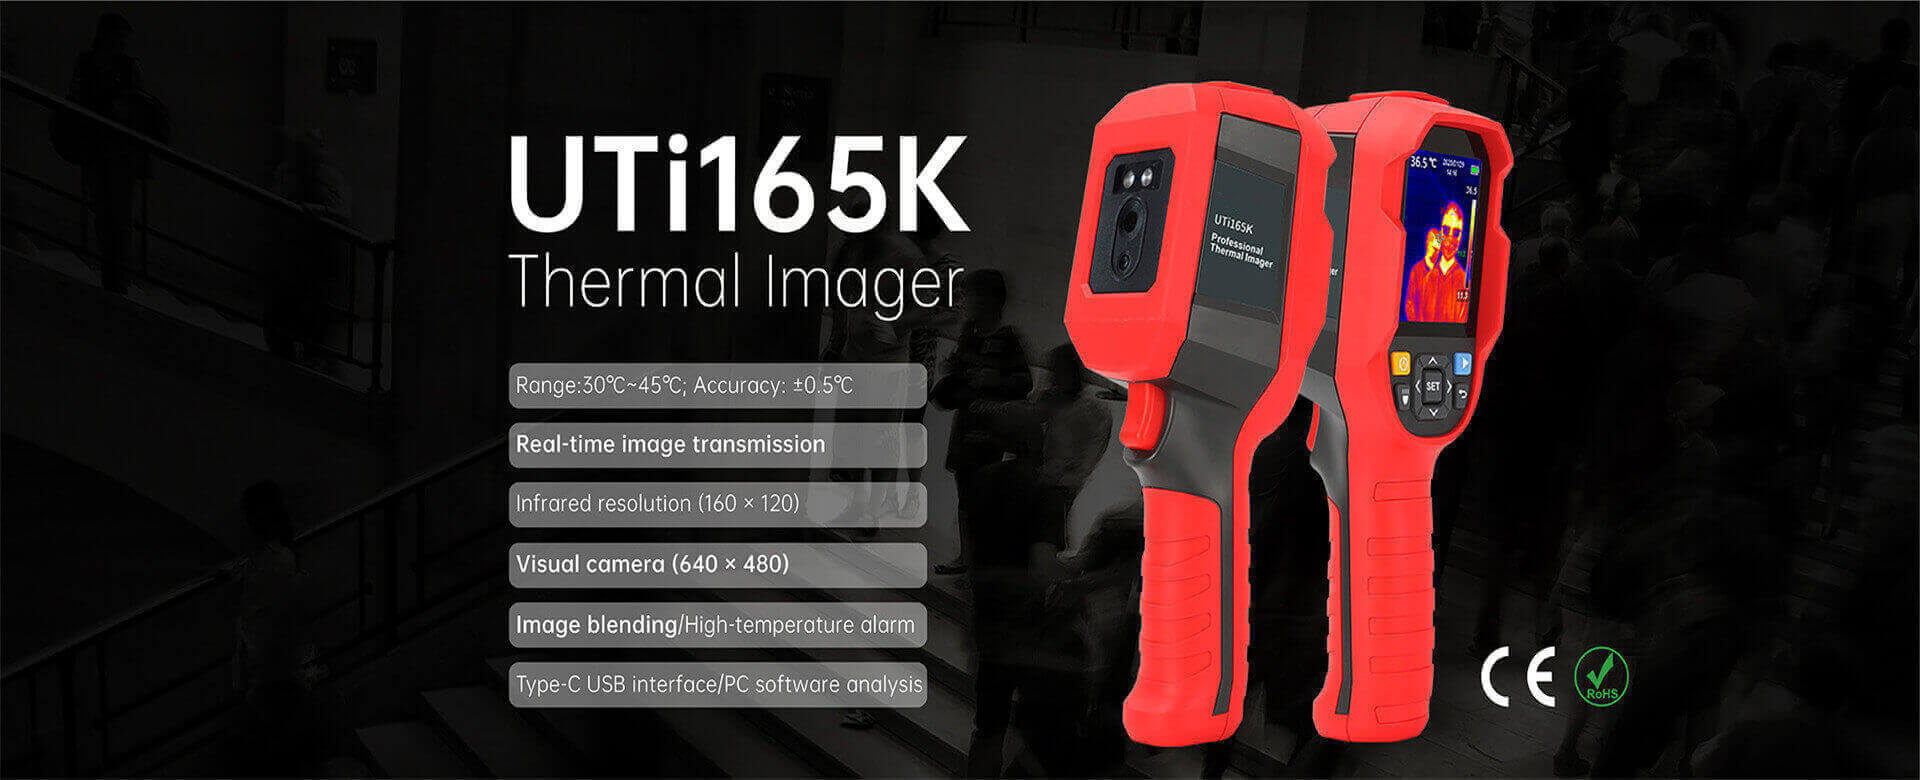 UTI165K-Thermal-Imaging-Thermometer--banner